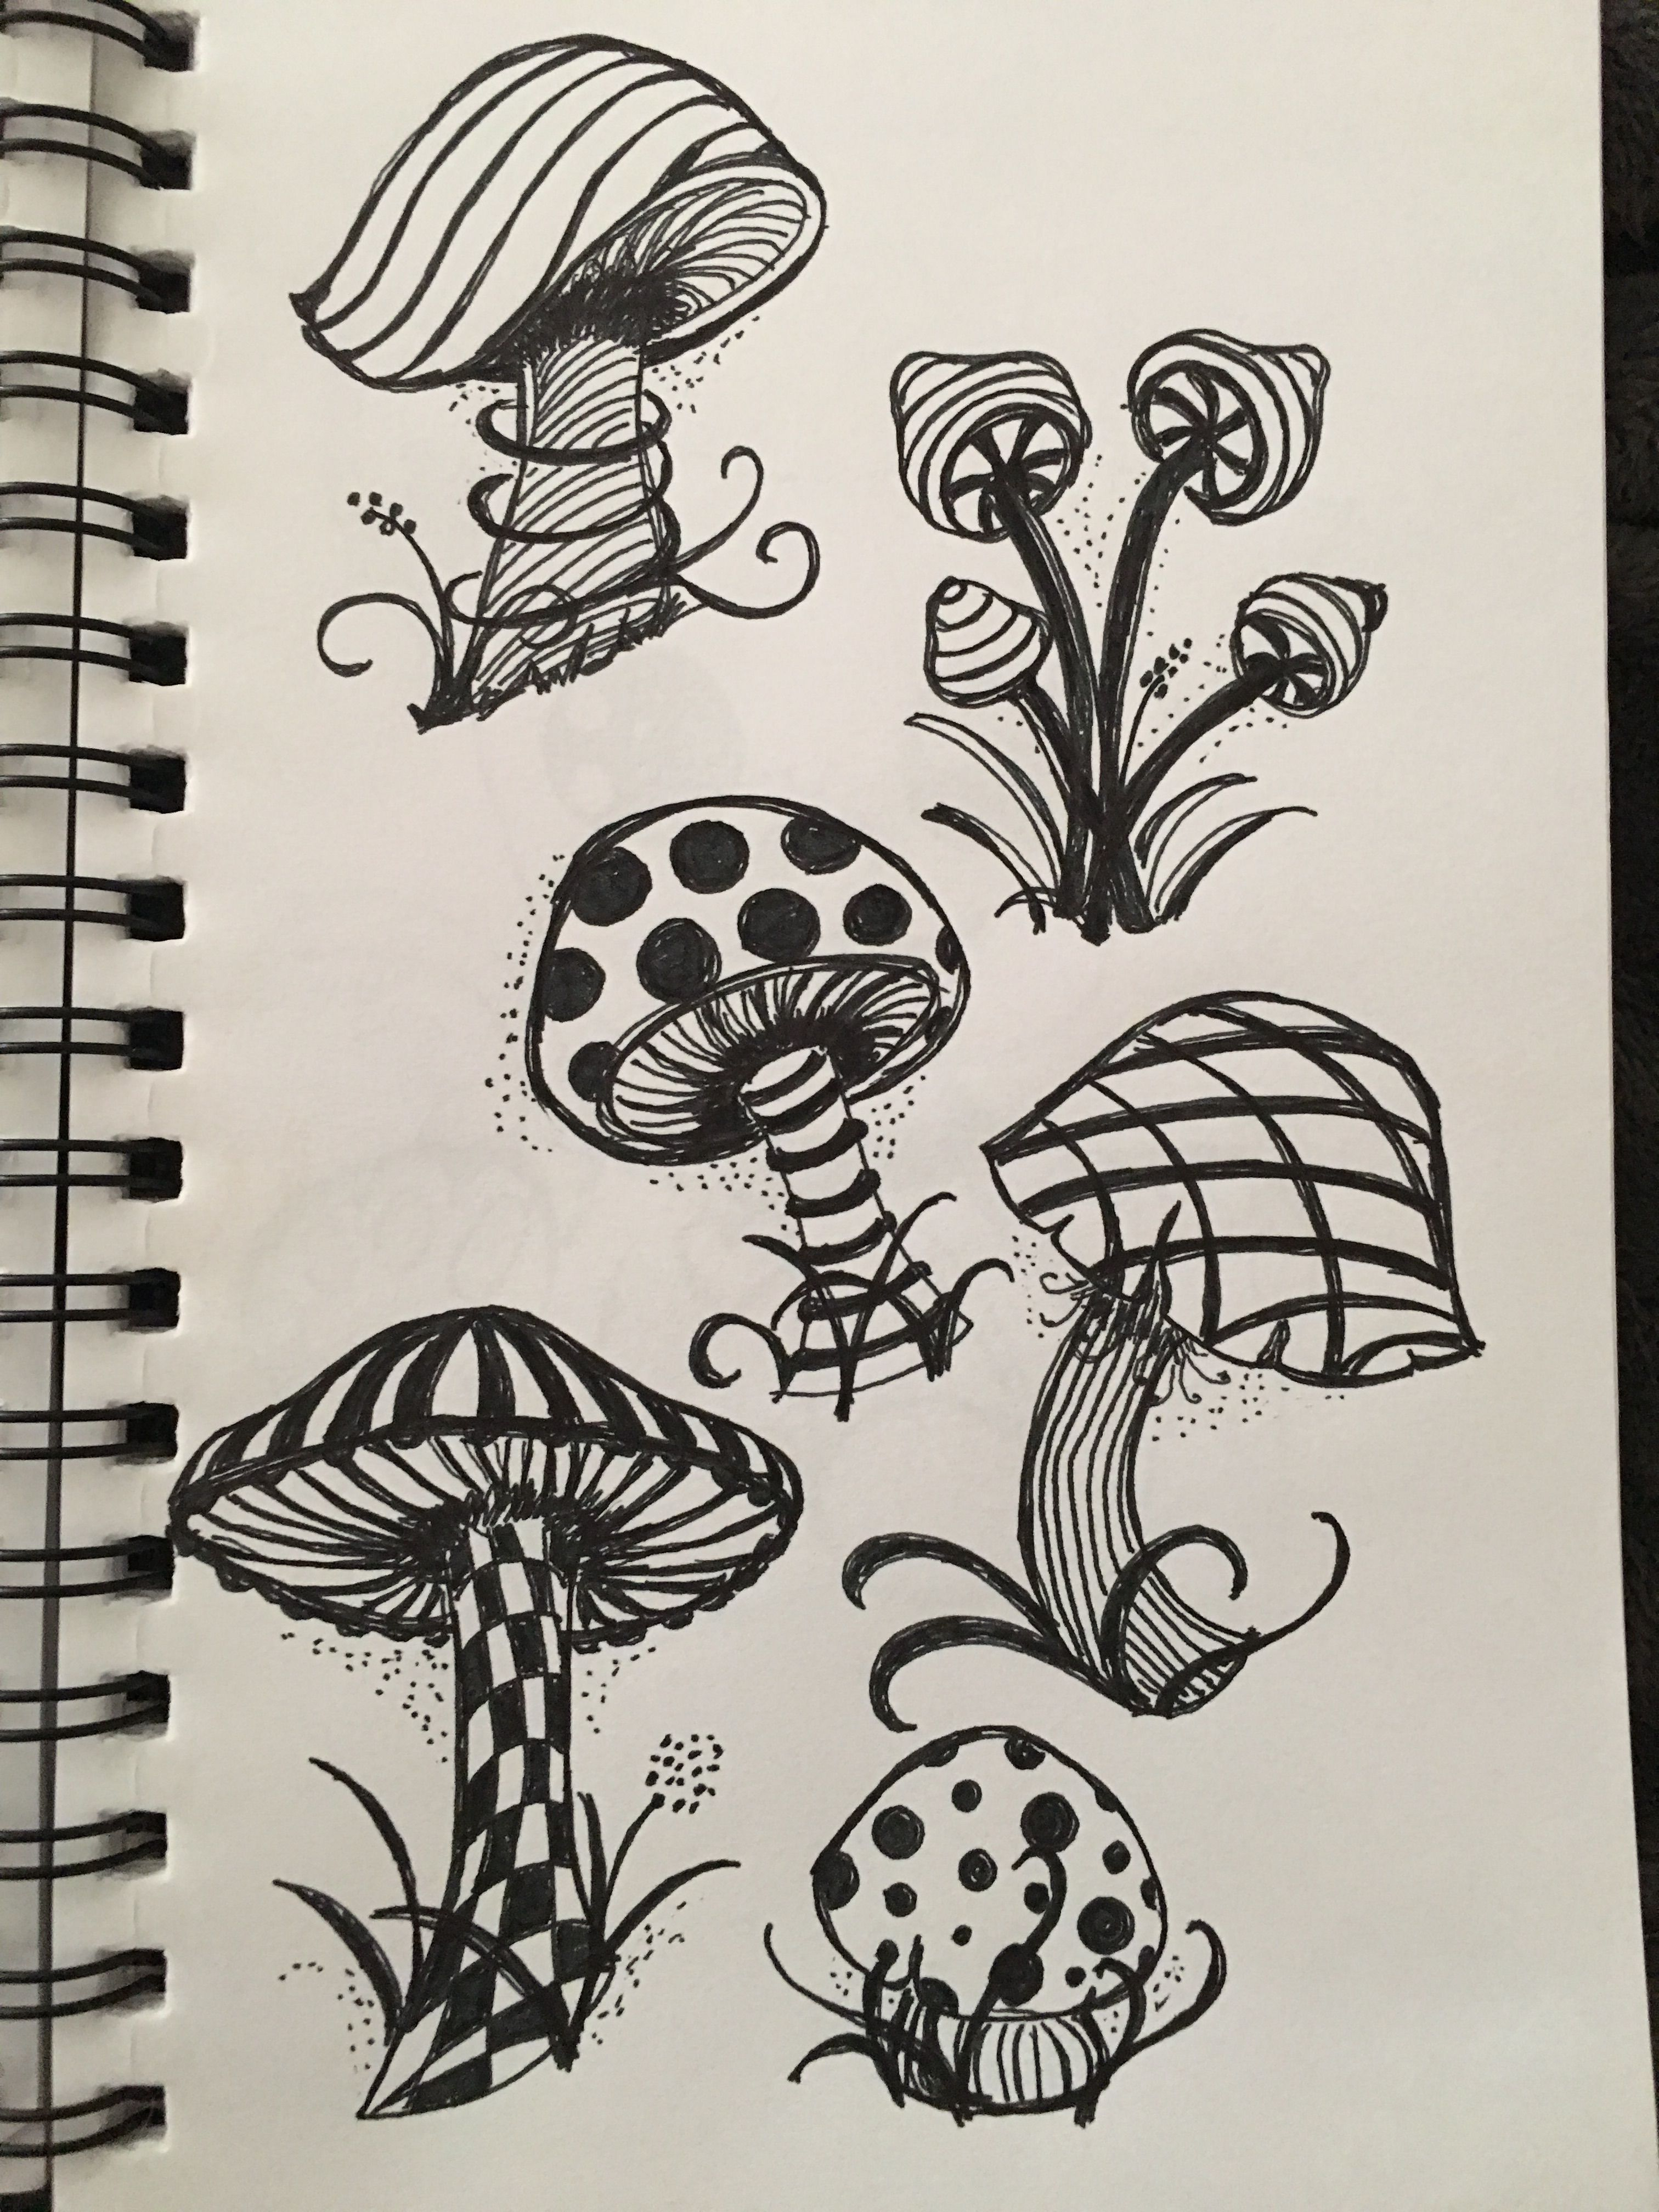 Trippy Mushroom Drawing : trippy, mushroom, drawing, Doodle, Psychedelic, Drawings,, Hippie, Painting